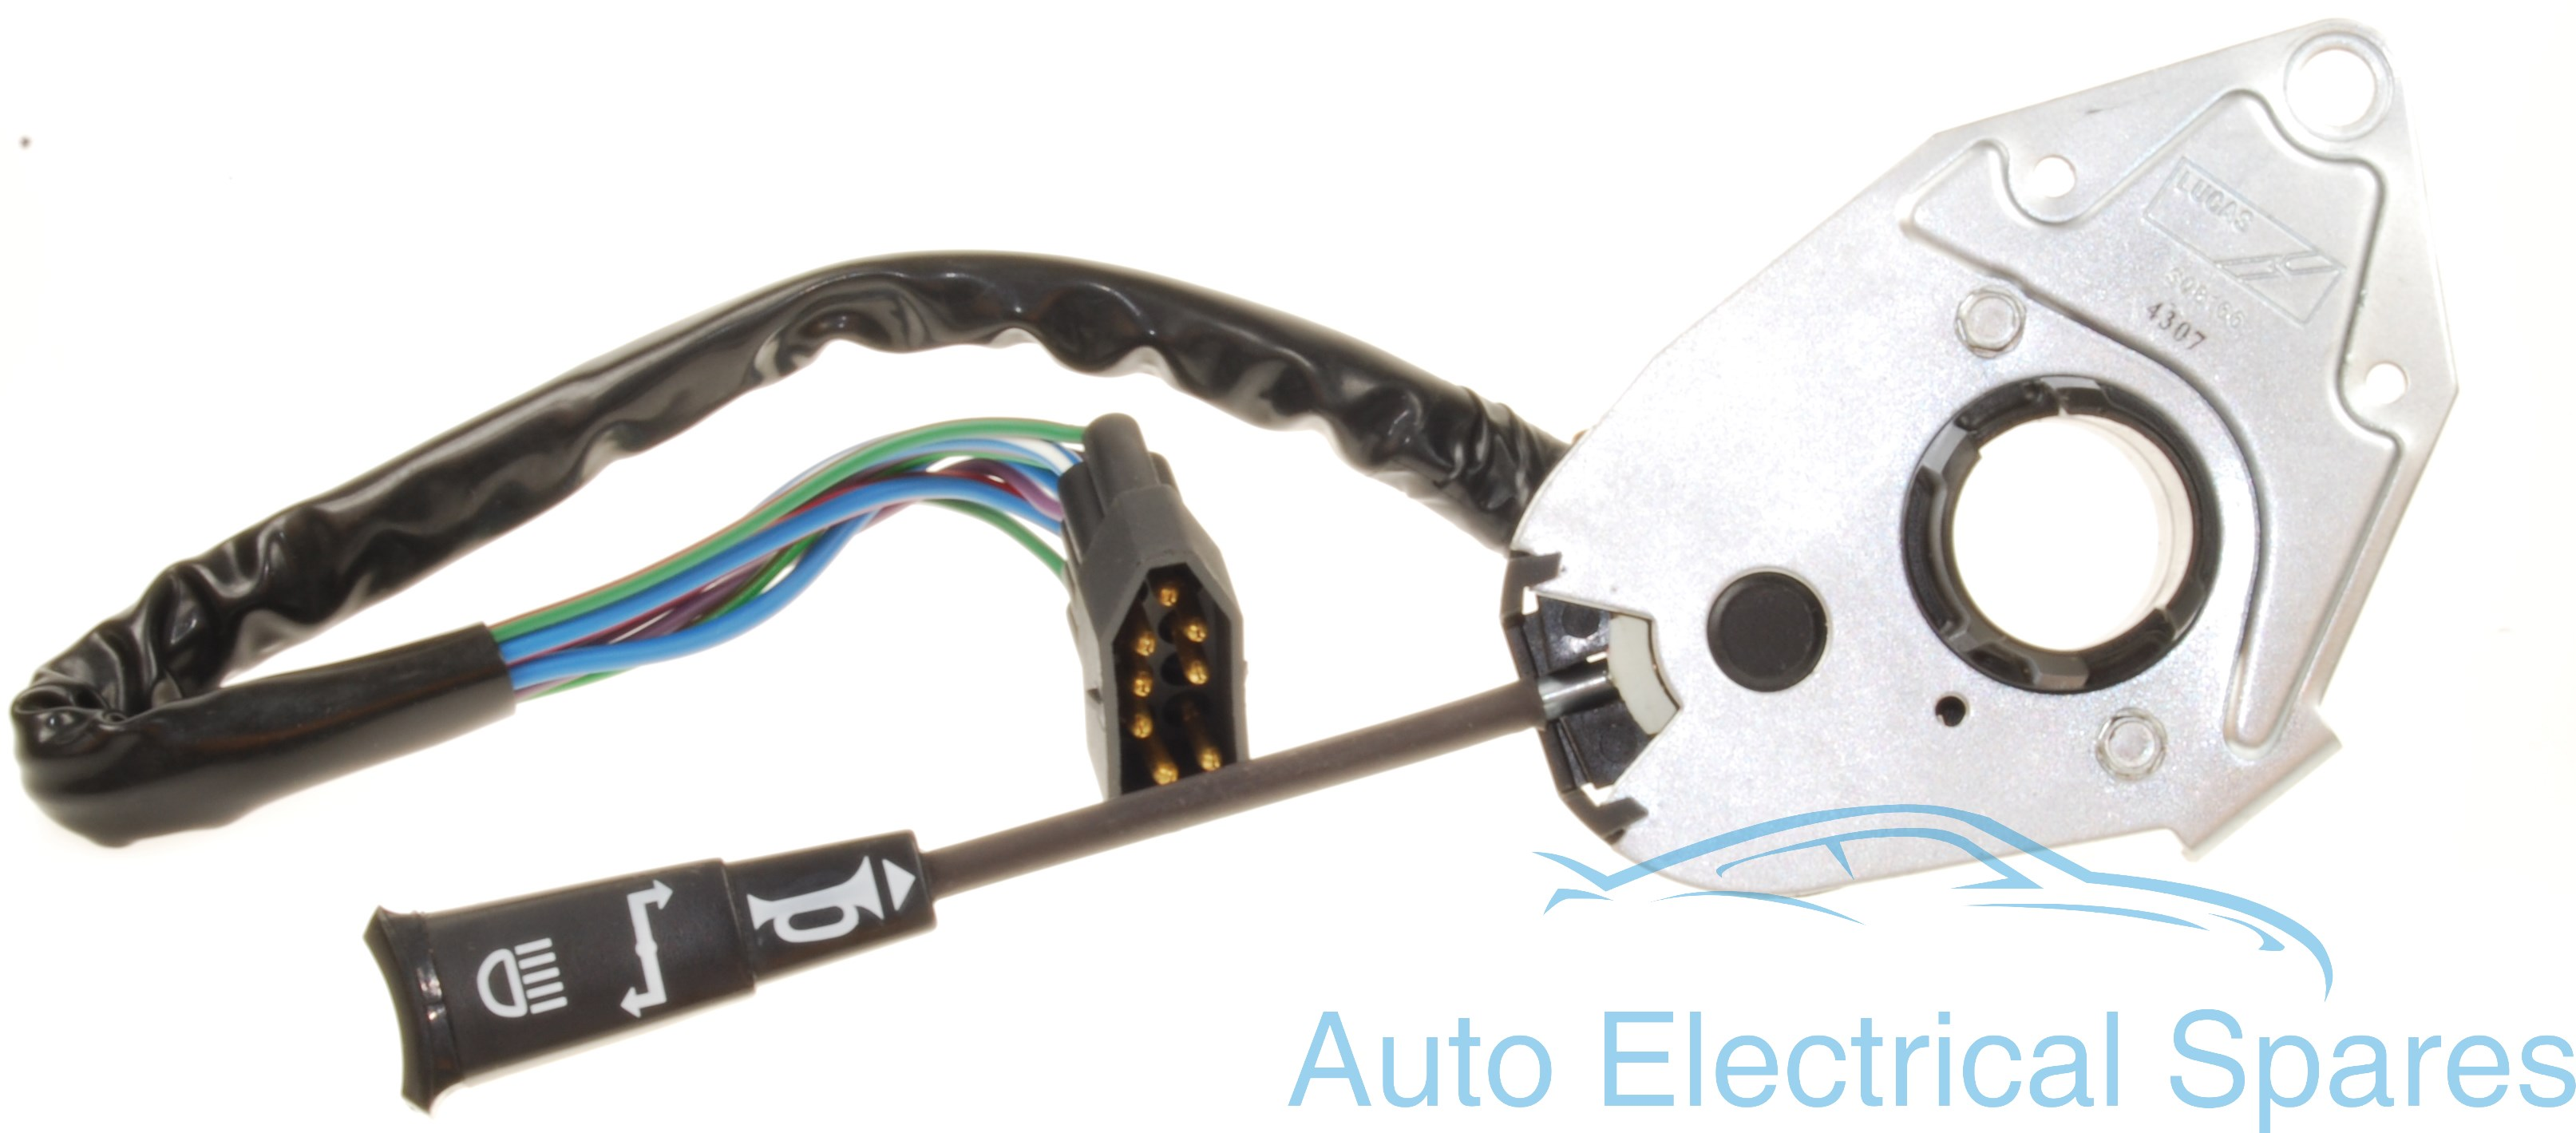 Lucas Sqb166 30445 163sa Indicator Switch Mini 1275 Gt With Alternator And Rocker Type Switches